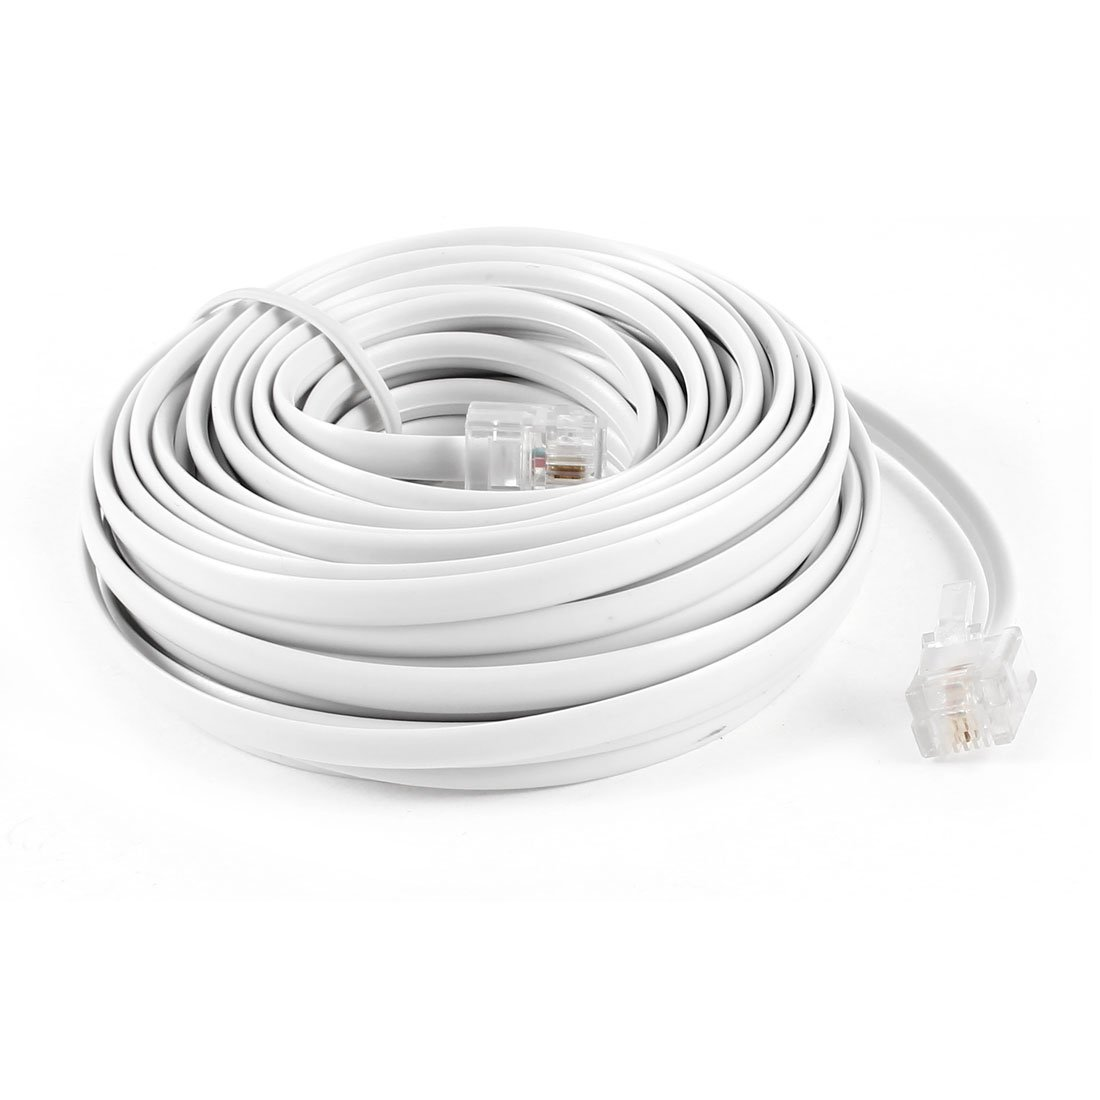 9m 30ft Rj11 6p2c Modular Telephone Phone Cables Wire White In Cable Wiring Cords From Computer Office On Alibaba Group